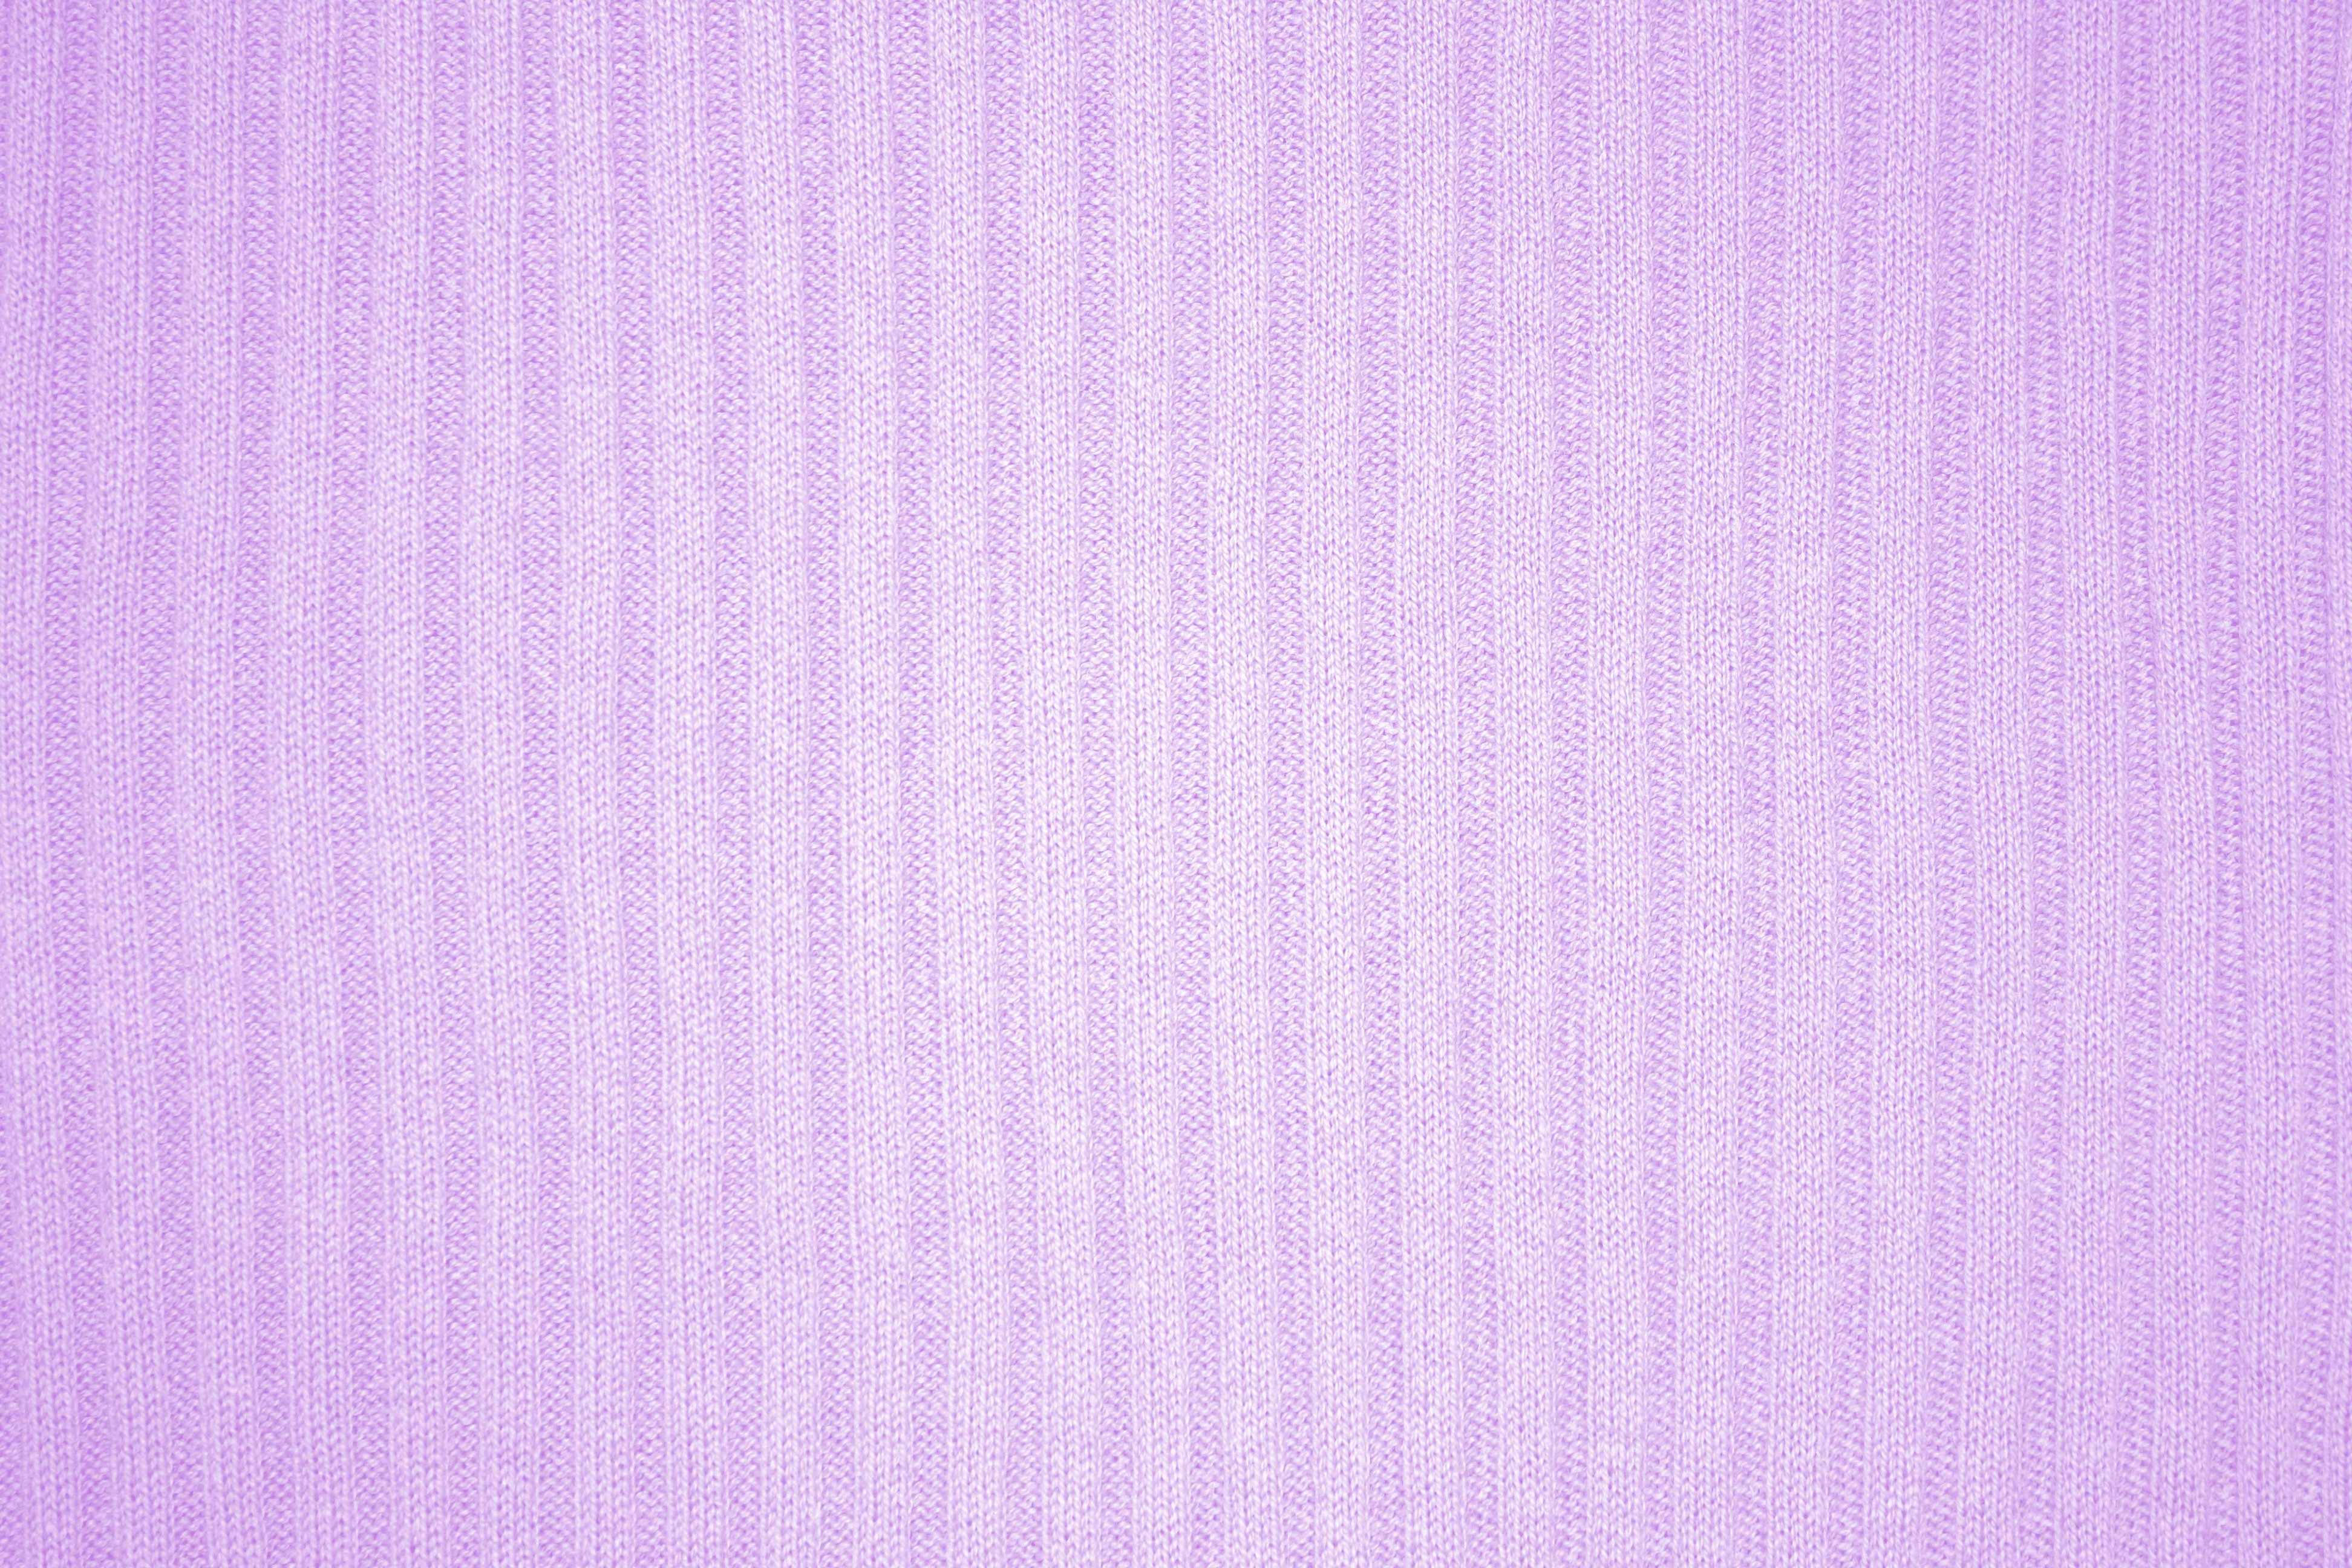 Lavender Ribbed Knit Fabric Texture Picture Photograph Photos 3888x2592